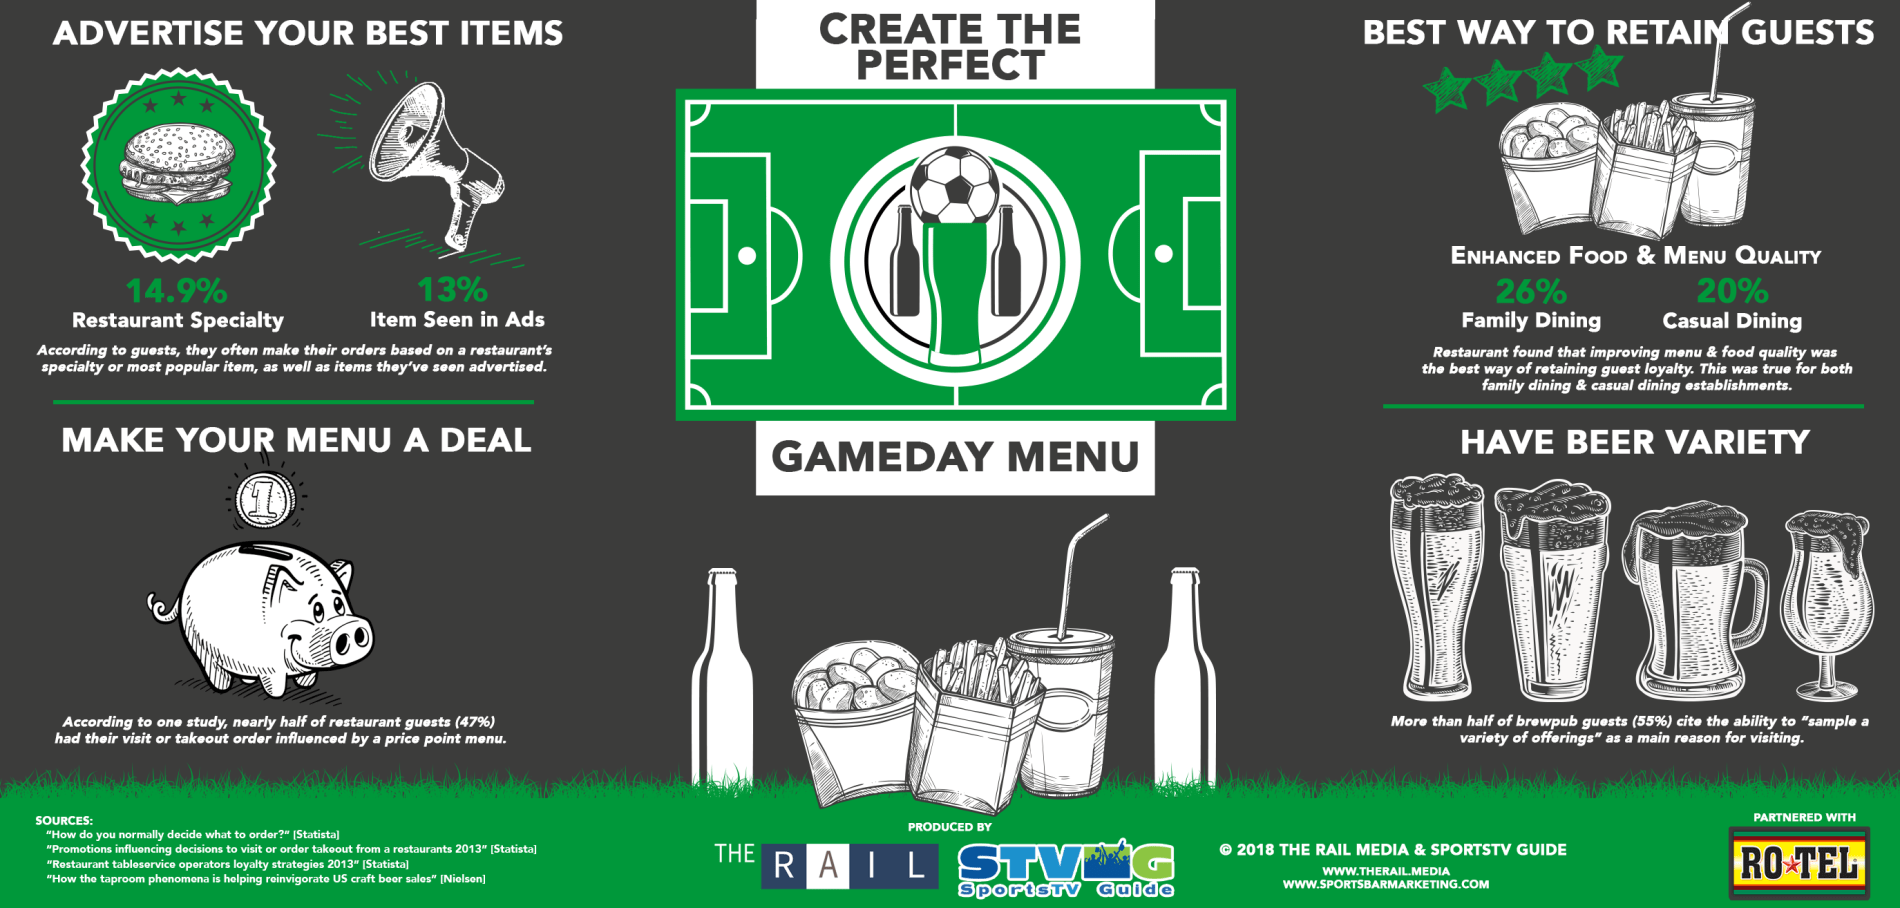 Sports Bar Gameday Menu Infographic